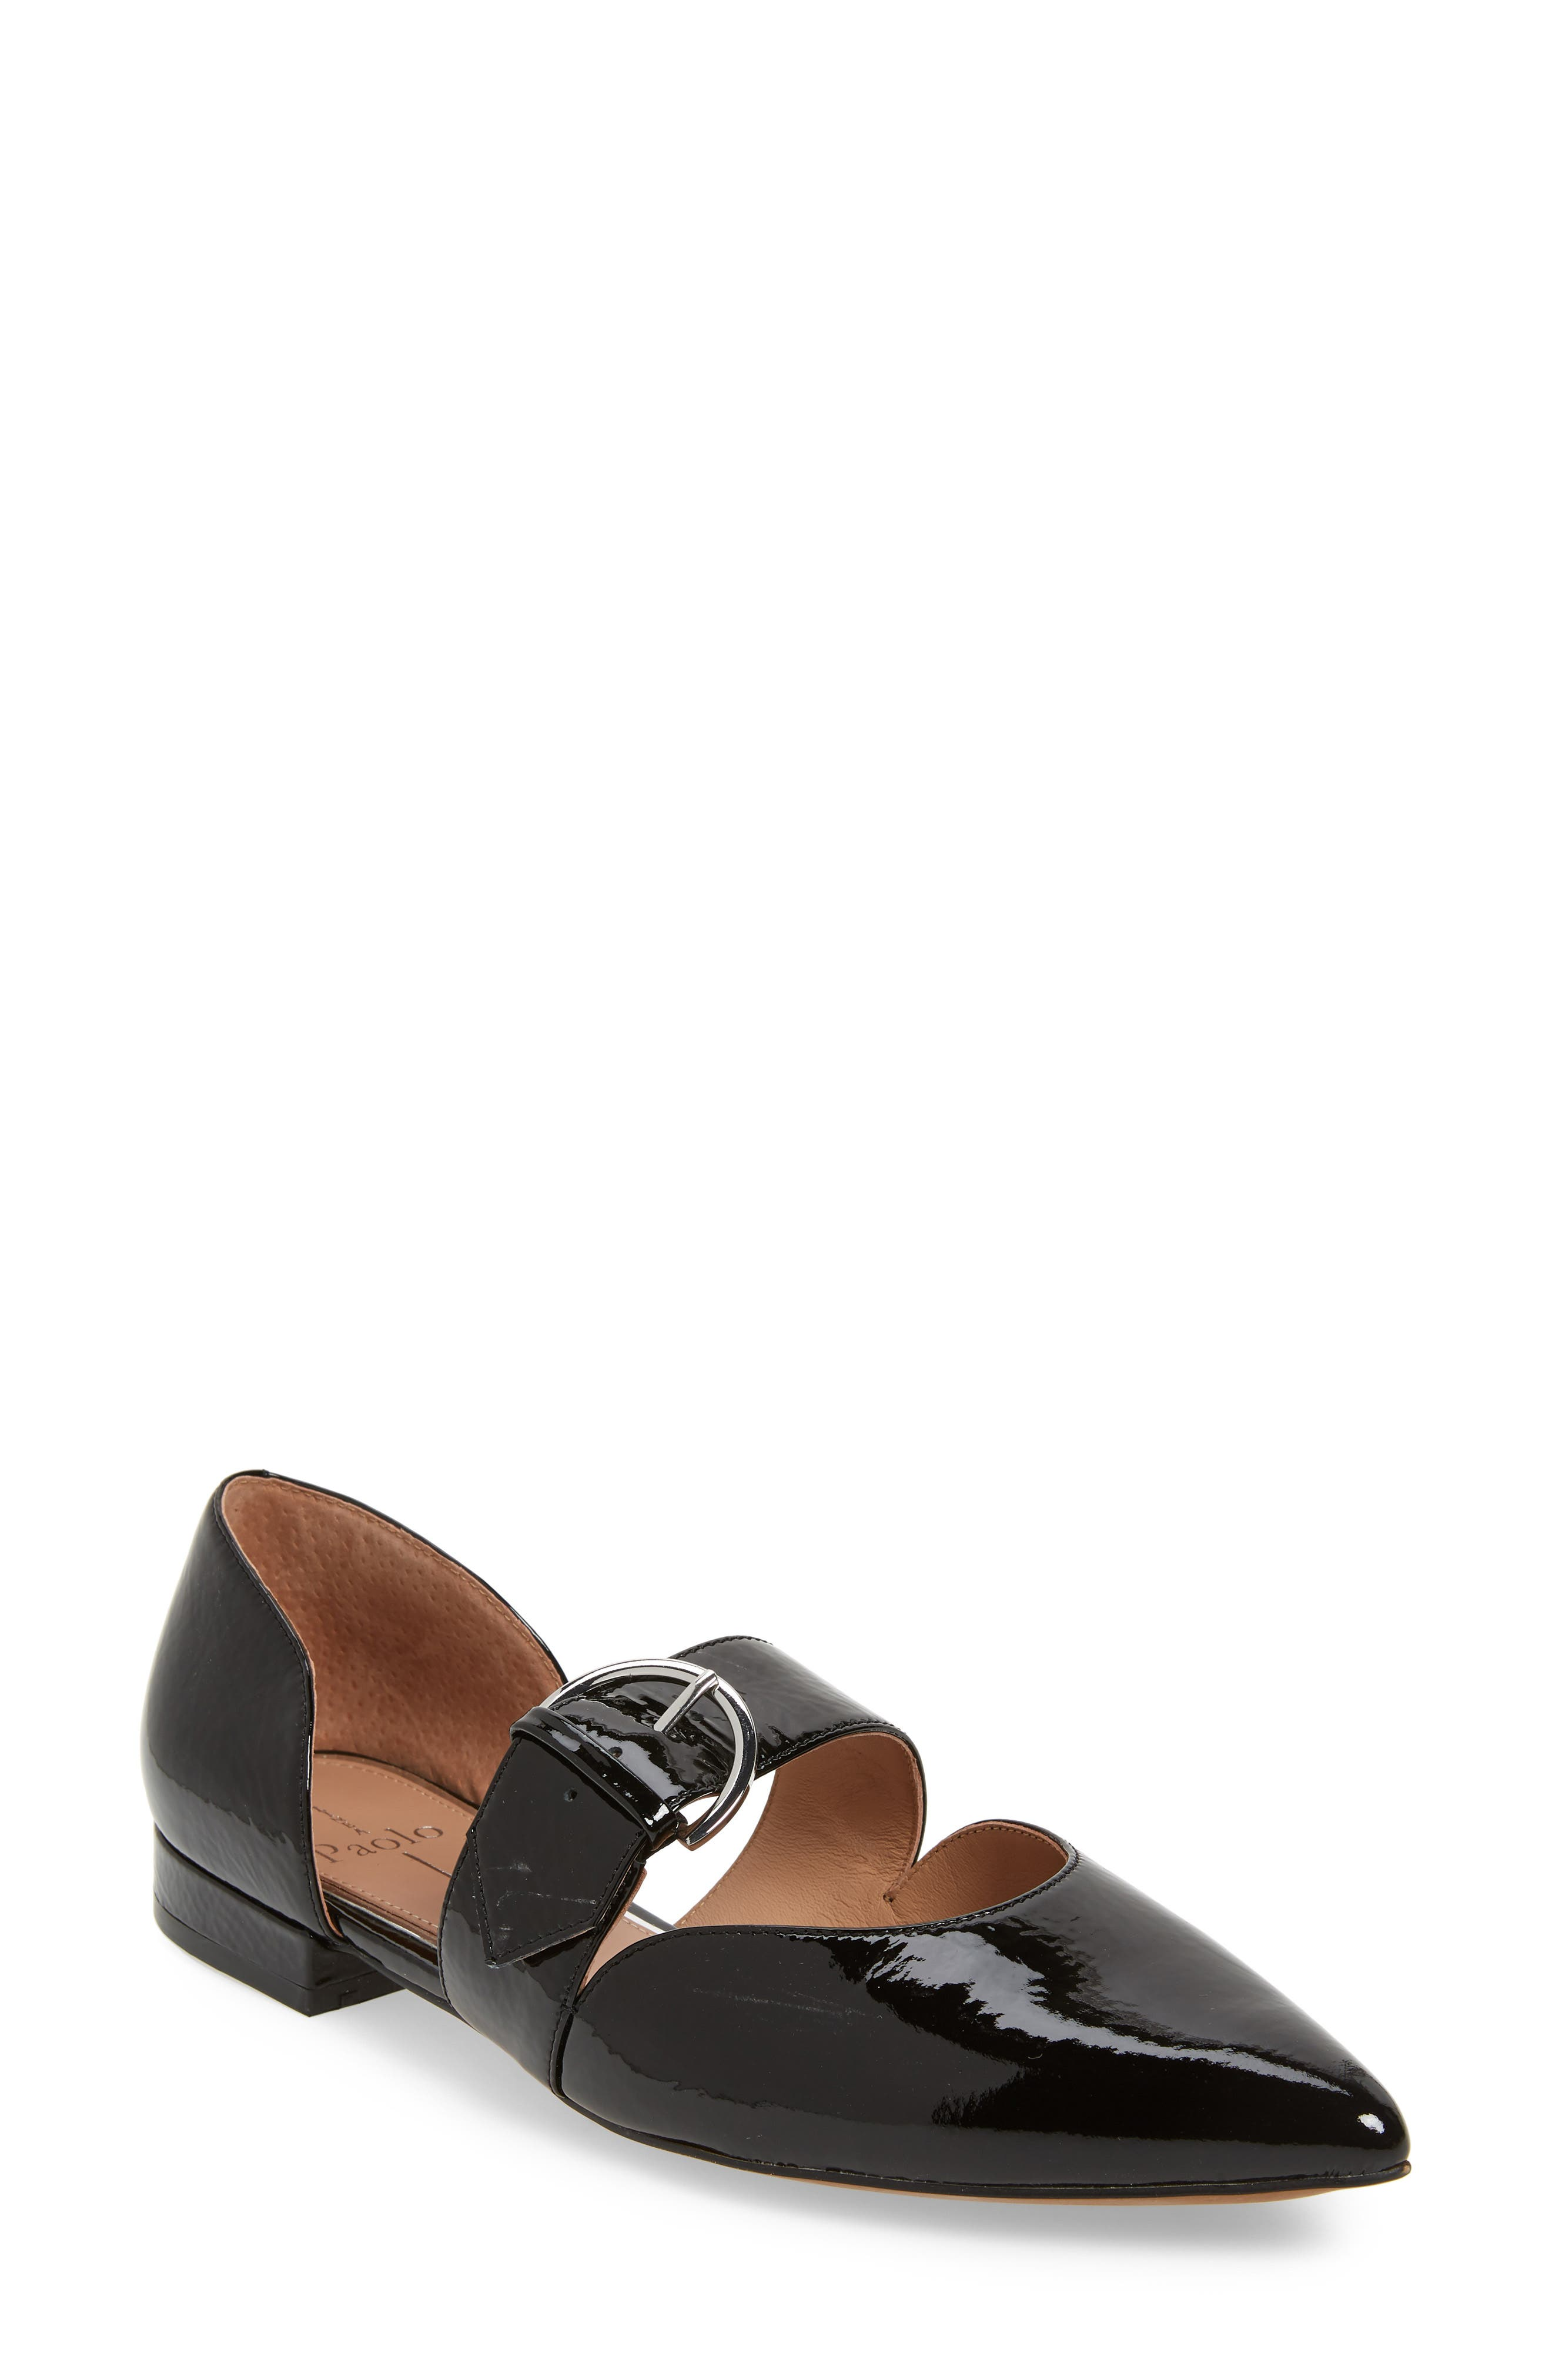 LINEA PAOLO Dean Pointy Toe Flat, Main, color, BLACK WRINKLE PATENT